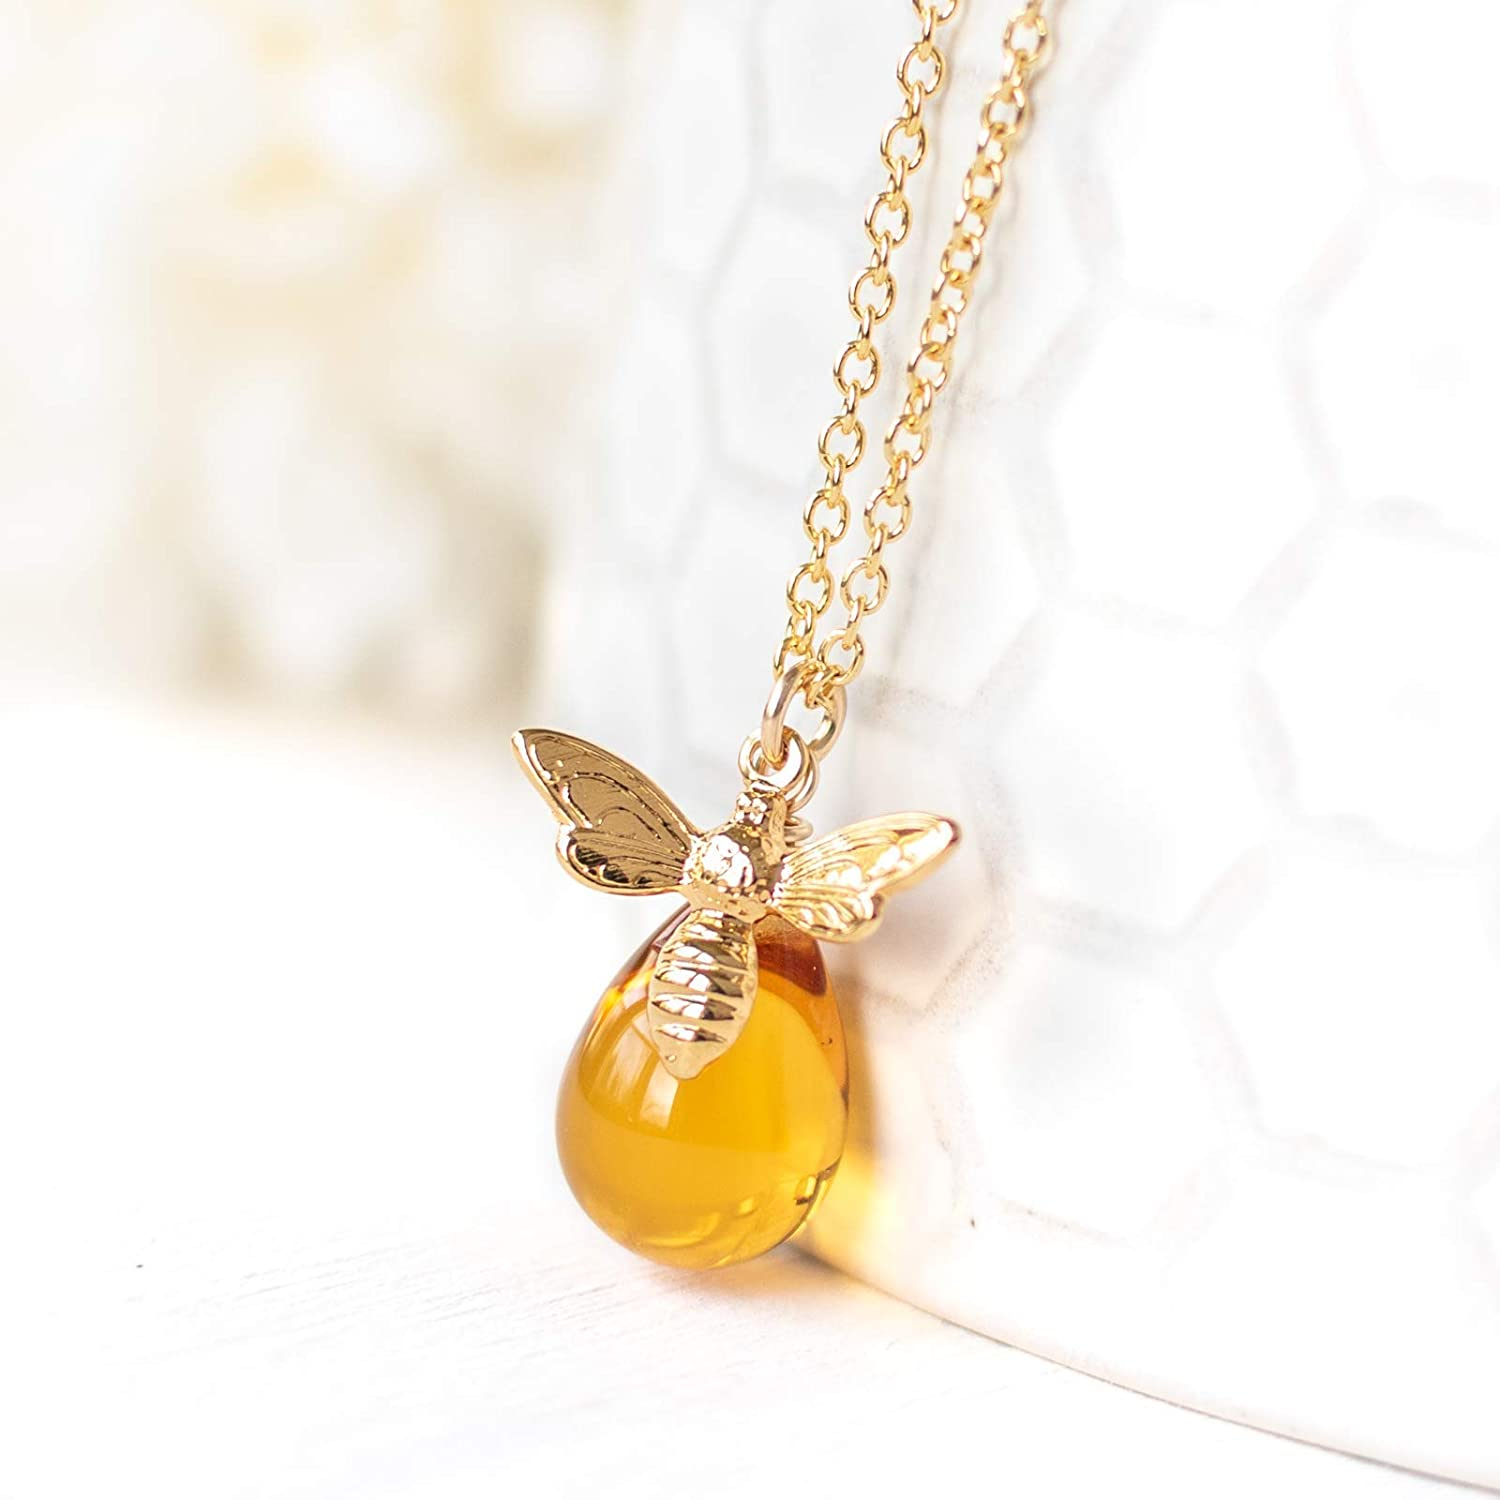 Gold-Filled Honey Bee Charm Necklace